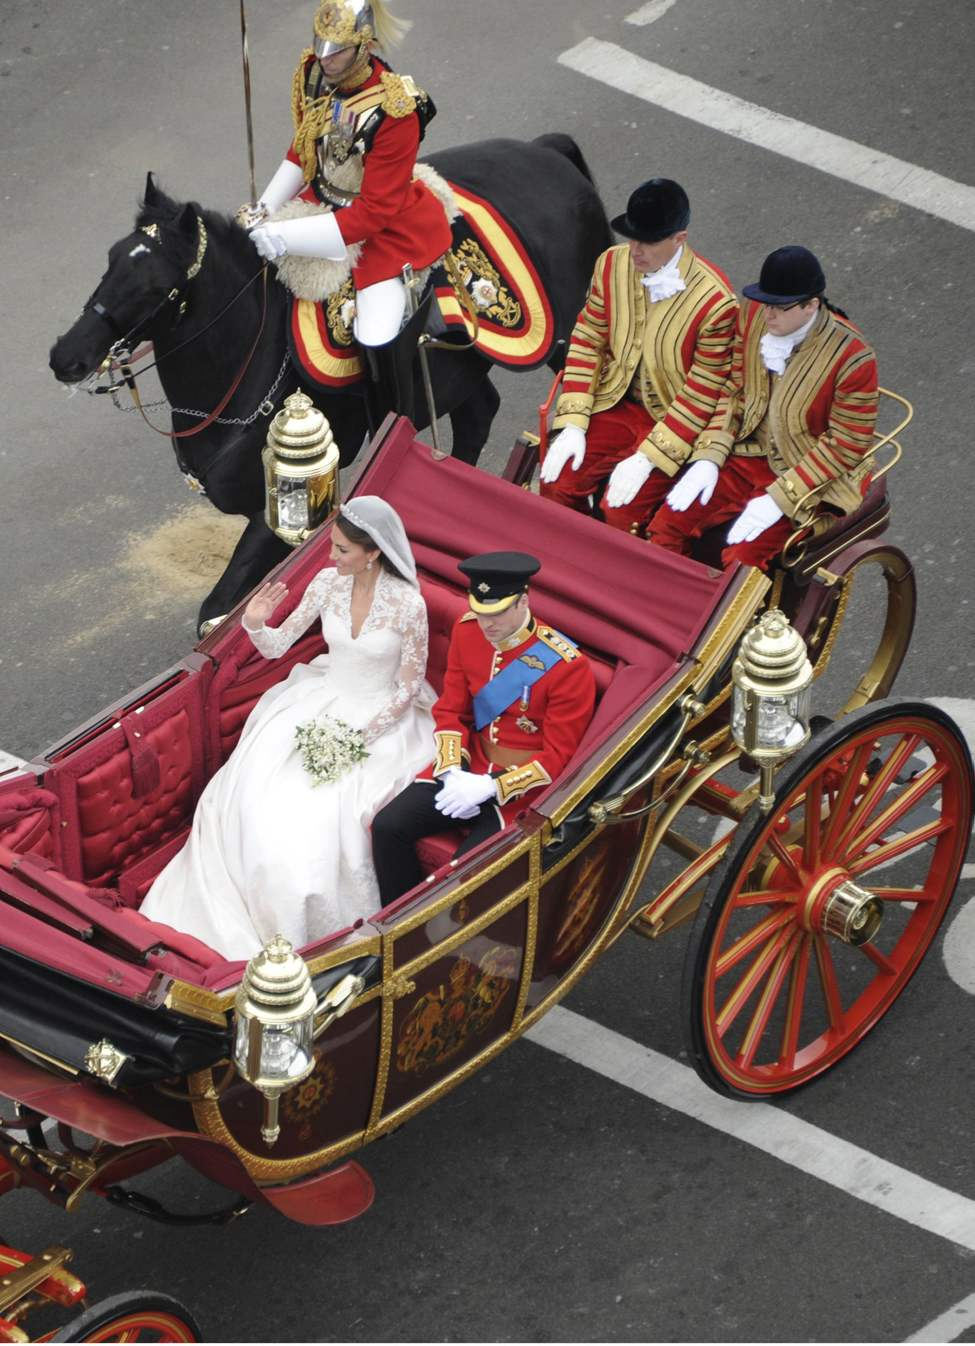 Prince William and his new bride, Kate Middleton, ride in a carriage after their wedding in London, England, on Friday, April 29, 2011. (Abaca Press/MCT)